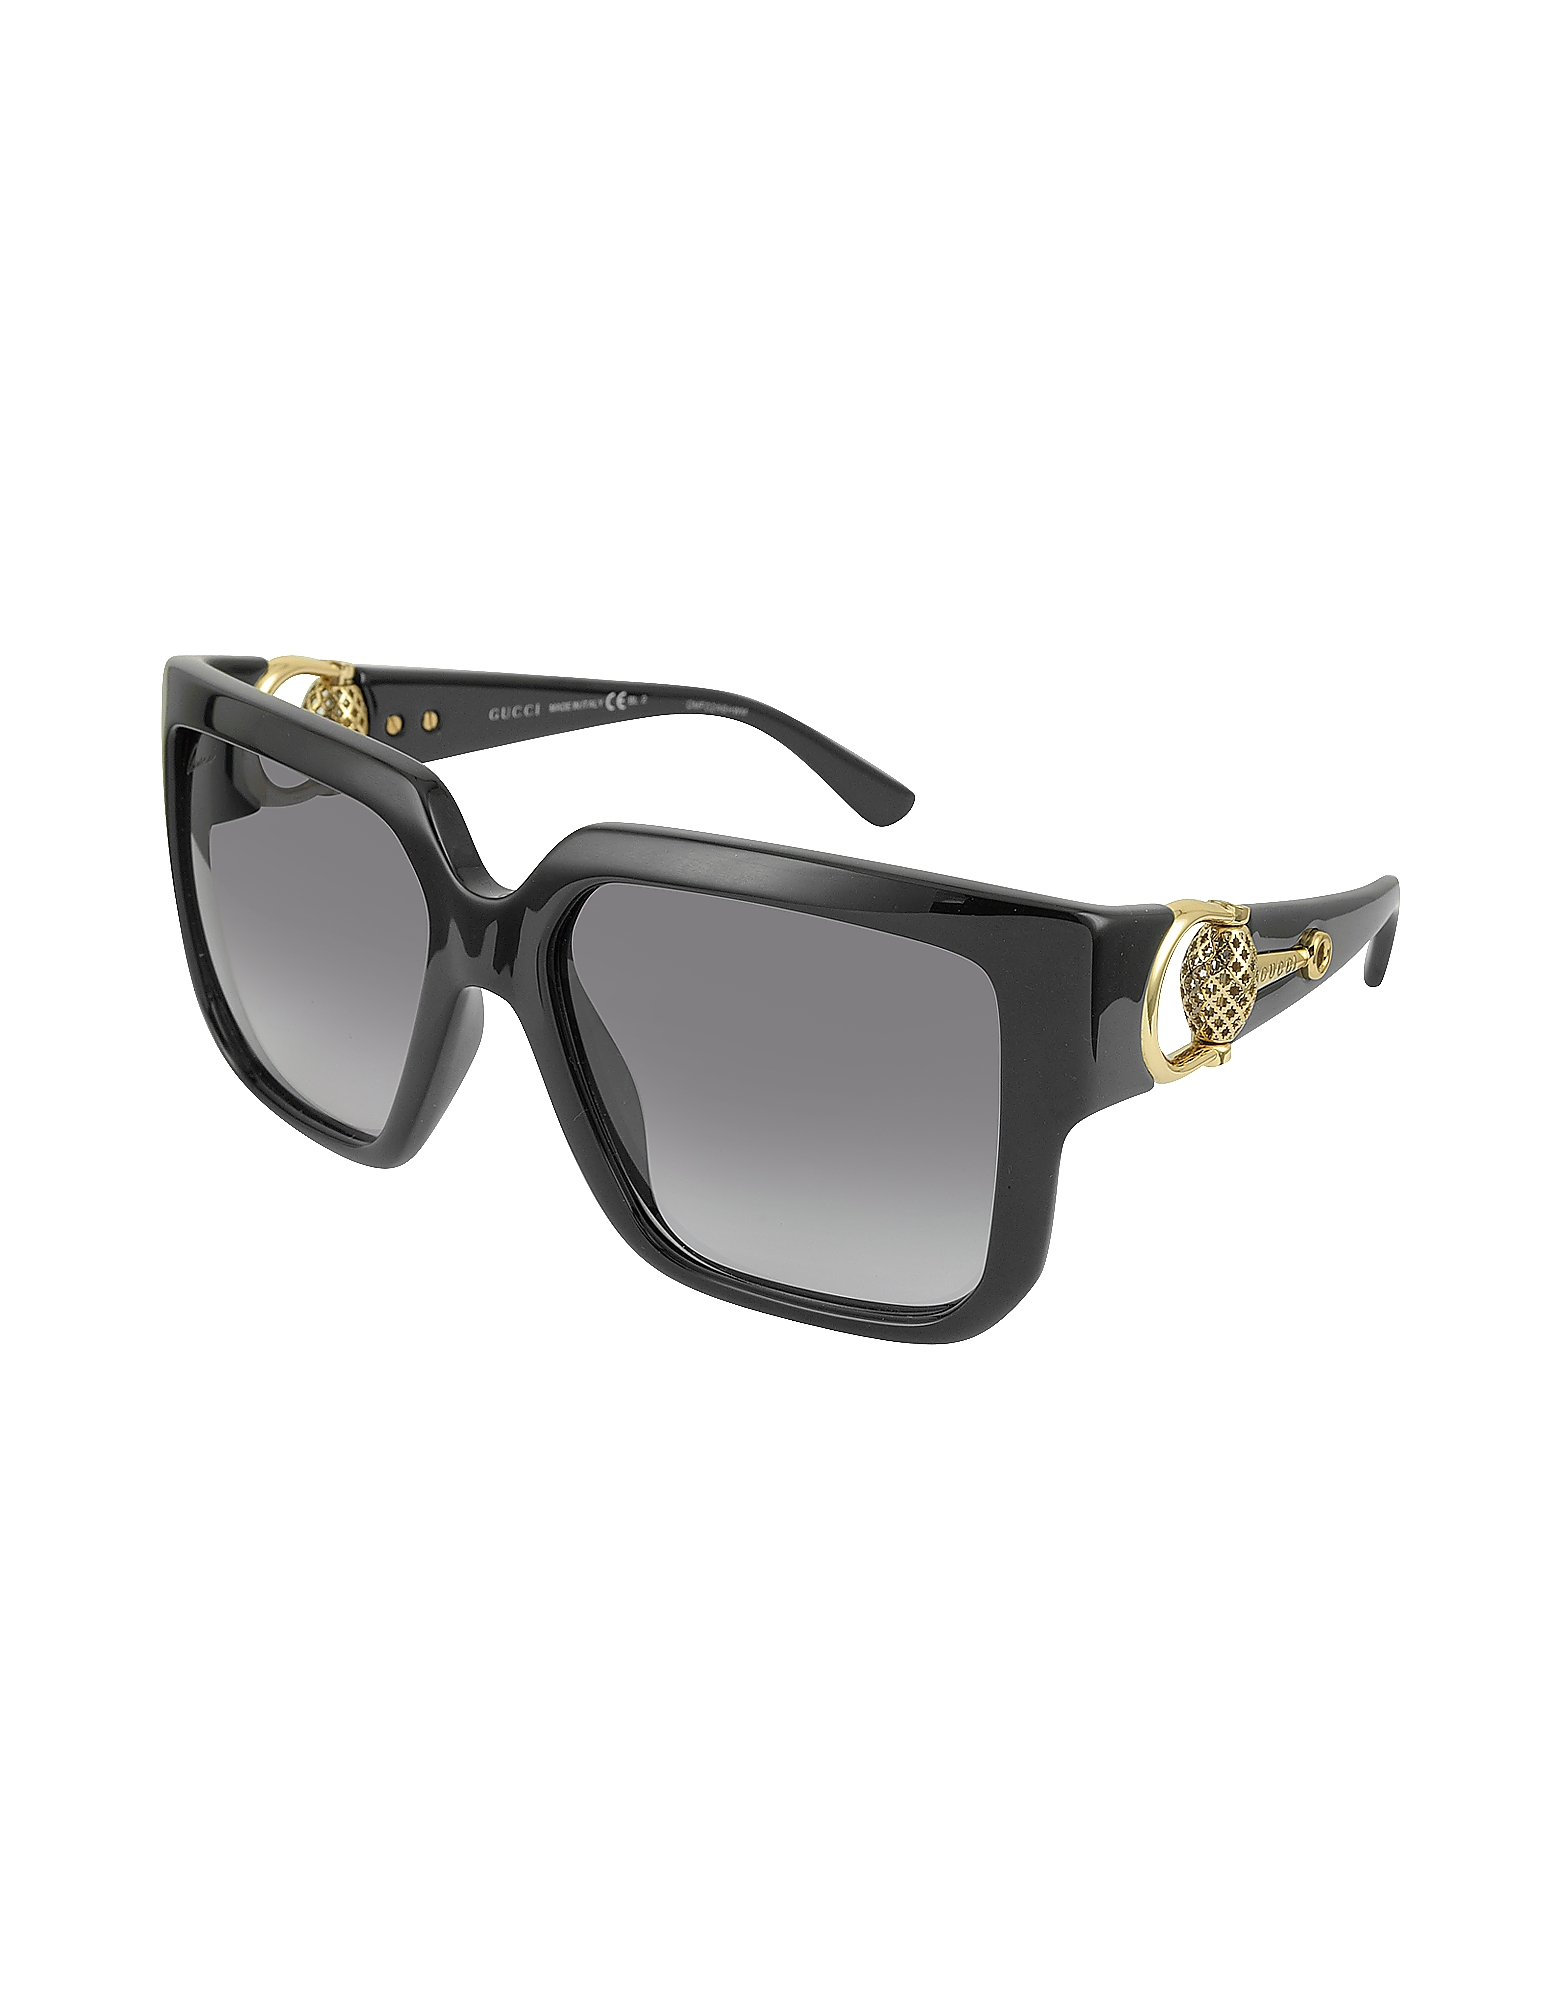 6451b2fb32 Gucci Oversized Sunglasses Black